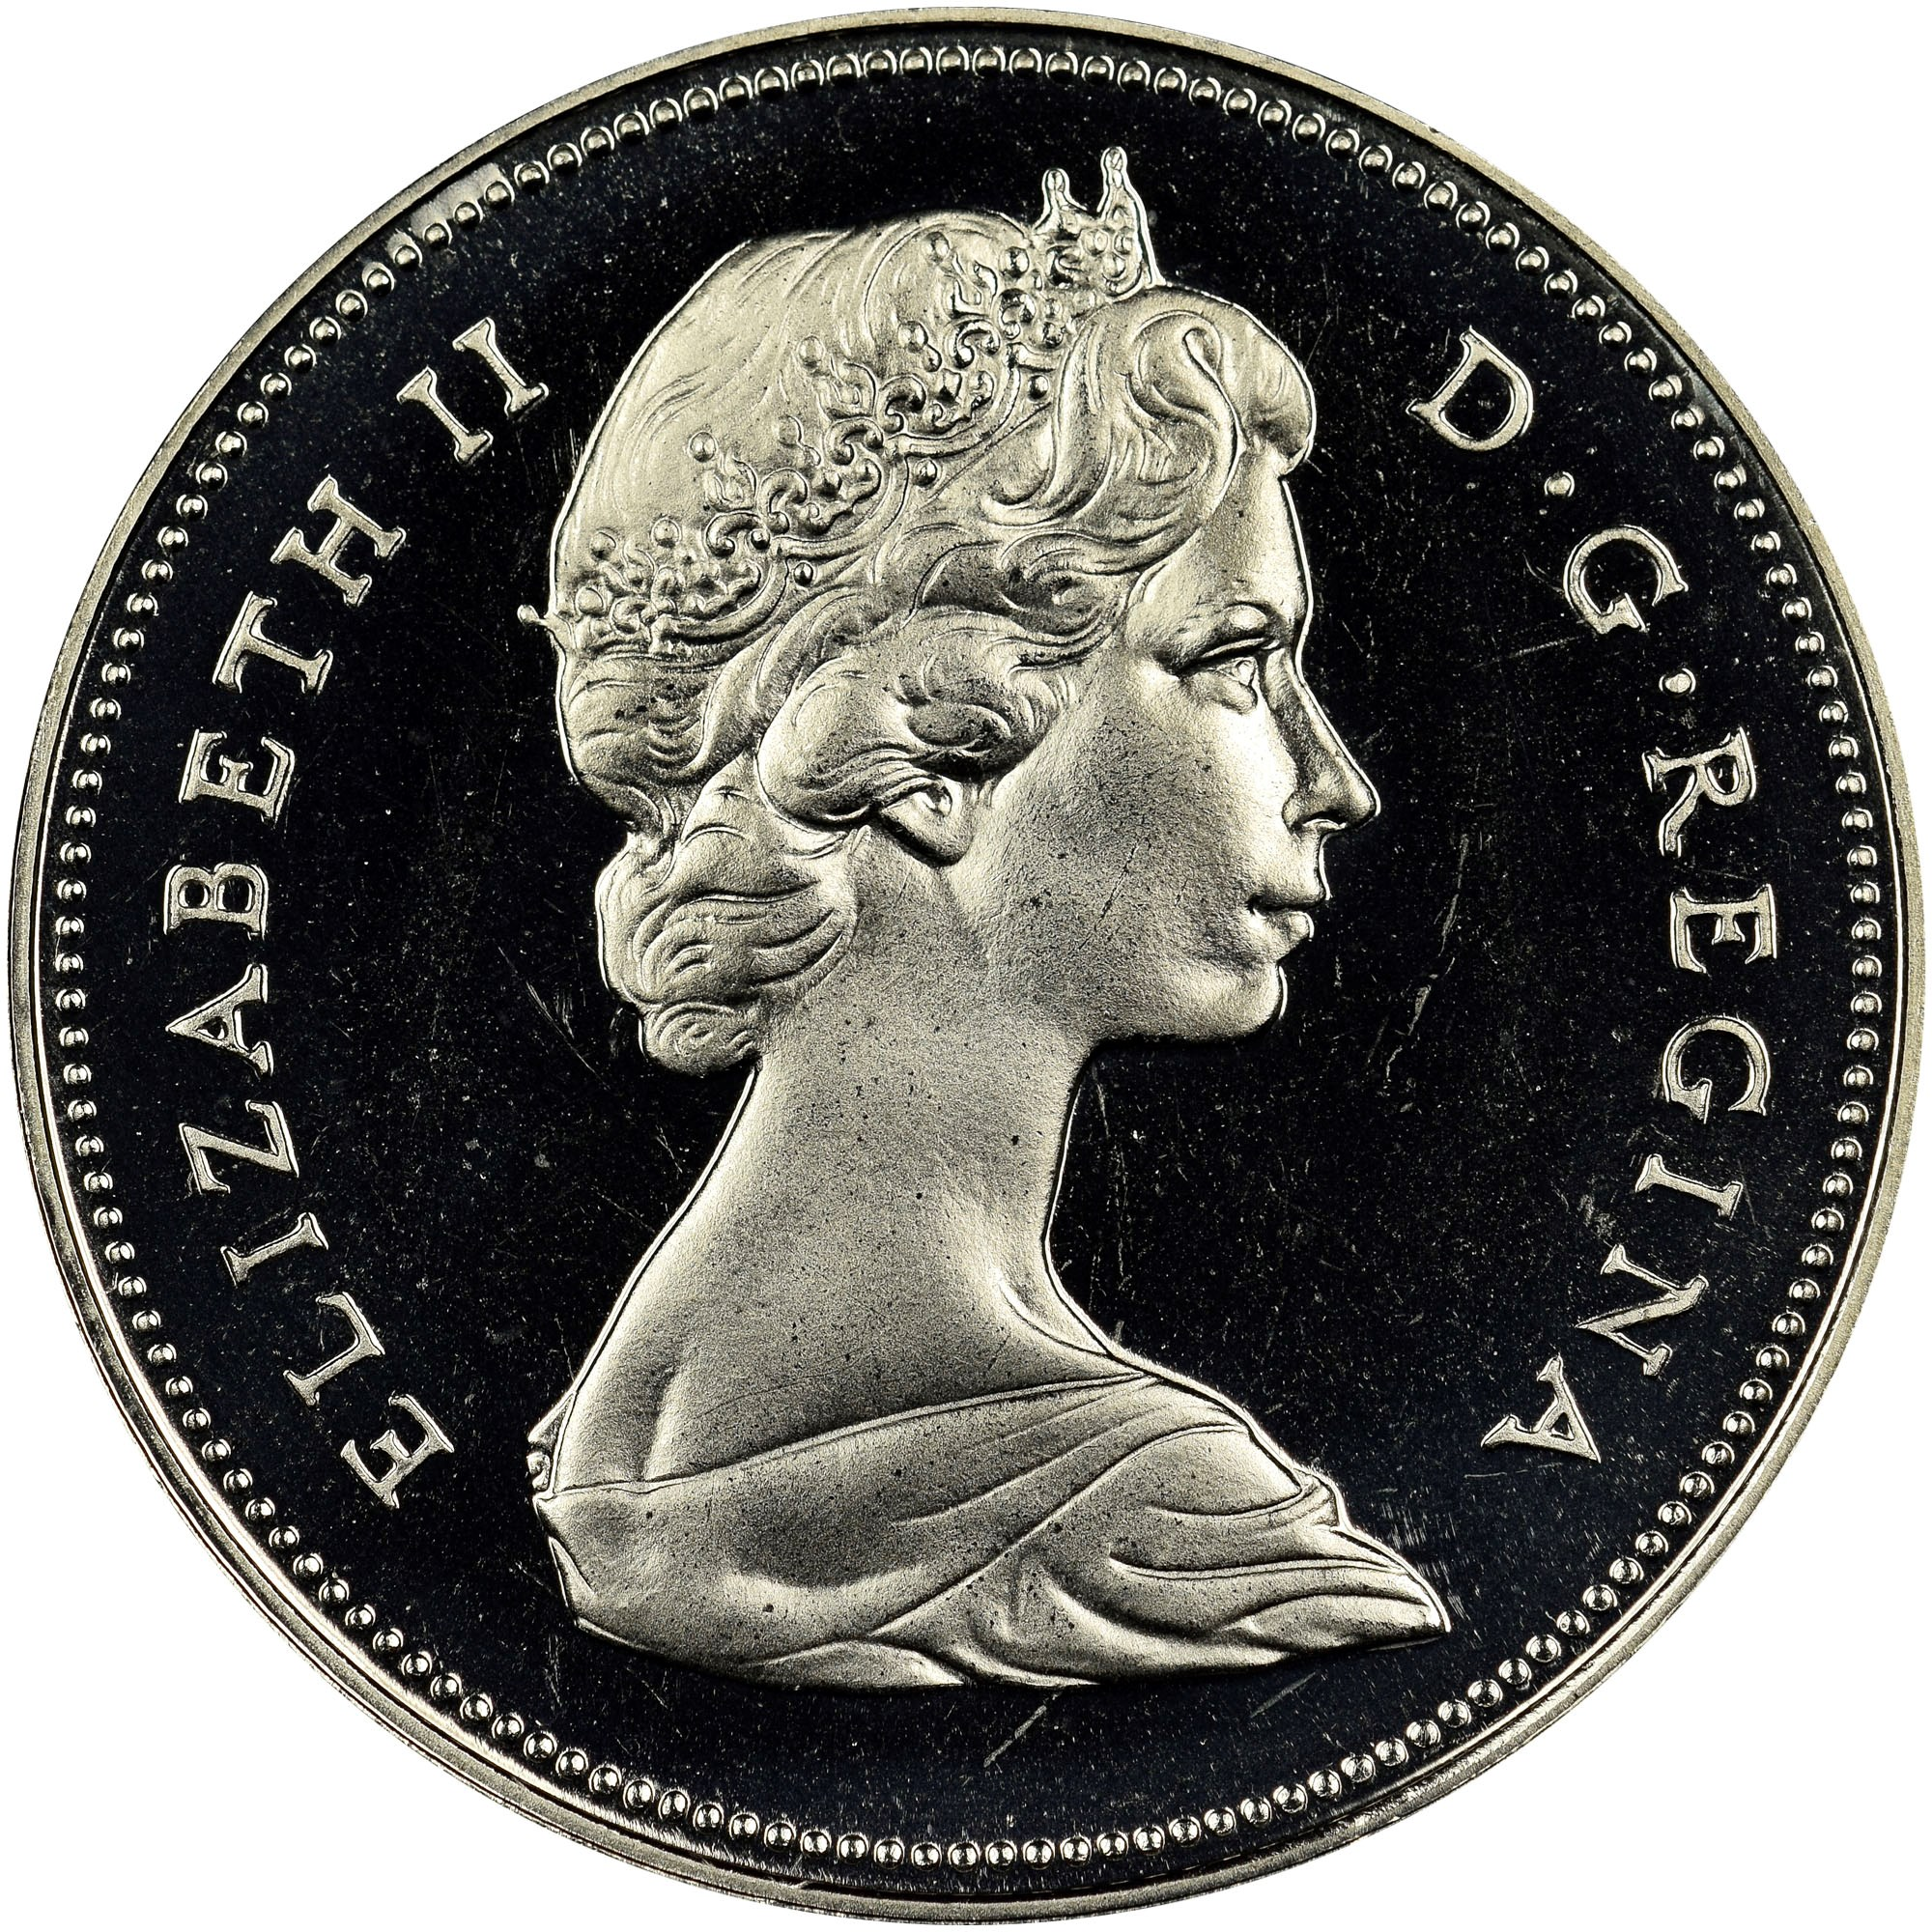 Canada 50 Cents obverse